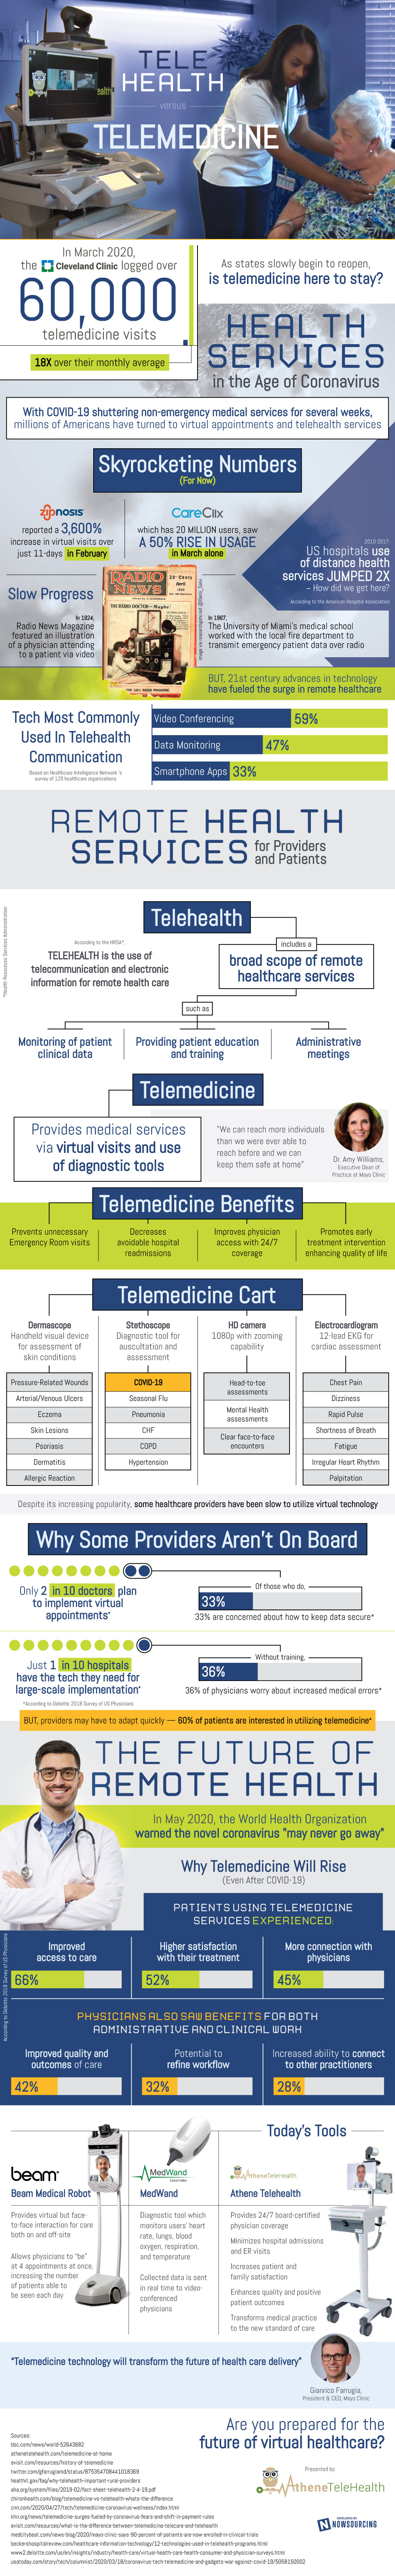 What Is The Difference Between Telehealth And Telemedicine? - Infographic